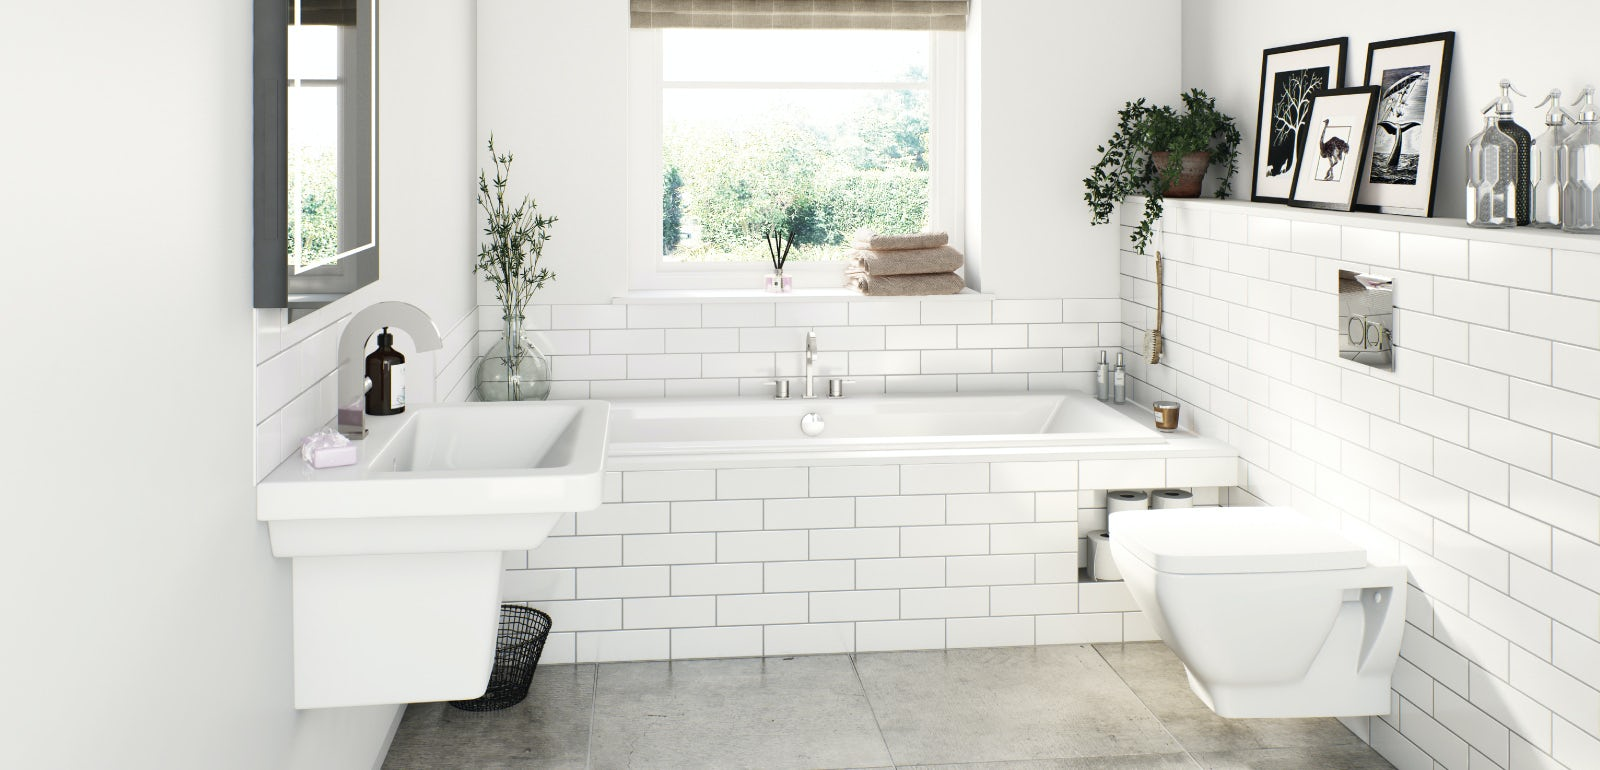 Designer bathroom suites 5 of the best - Designer bathroom ...